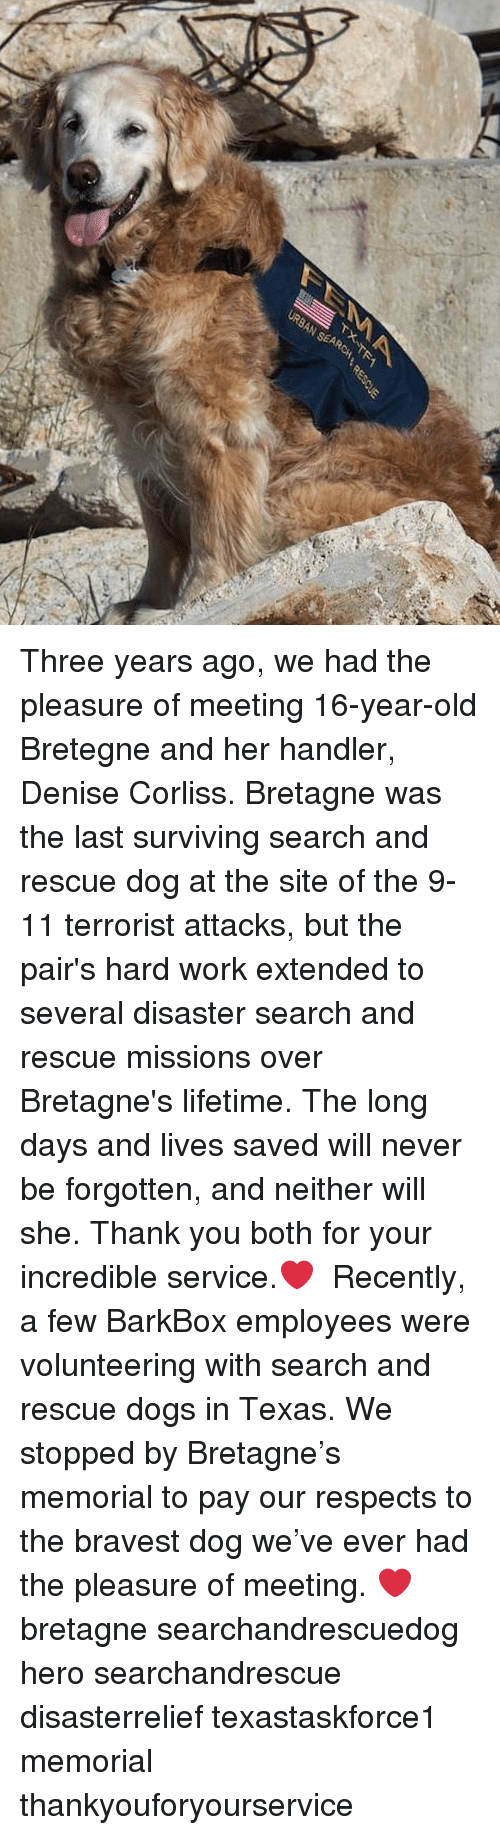 9/11, Dogs, and Memes: Three years ago, we had the pleasure of meeting 16-year-old Bretegne and her handler, Denise Corliss. Bretagne was the last surviving search and rescue dog at the site of the 9-11 terrorist attacks, but the pair's hard work extended to several disaster search and rescue missions over Bretagne's lifetime. The long days and lives saved will never be forgotten, and neither will she. Thank you both for your incredible service.❤️ ⠀ Recently, a few BarkBox employees were volunteering with search and rescue dogs in Texas. We stopped by Bretagne's memorial to pay our respects to the bravest dog we've ever had the pleasure of meeting. ❤️ ⠀ bretagne searchandrescuedog hero searchandrescue disasterrelief texastaskforce1 memorial thankyouforyourservice